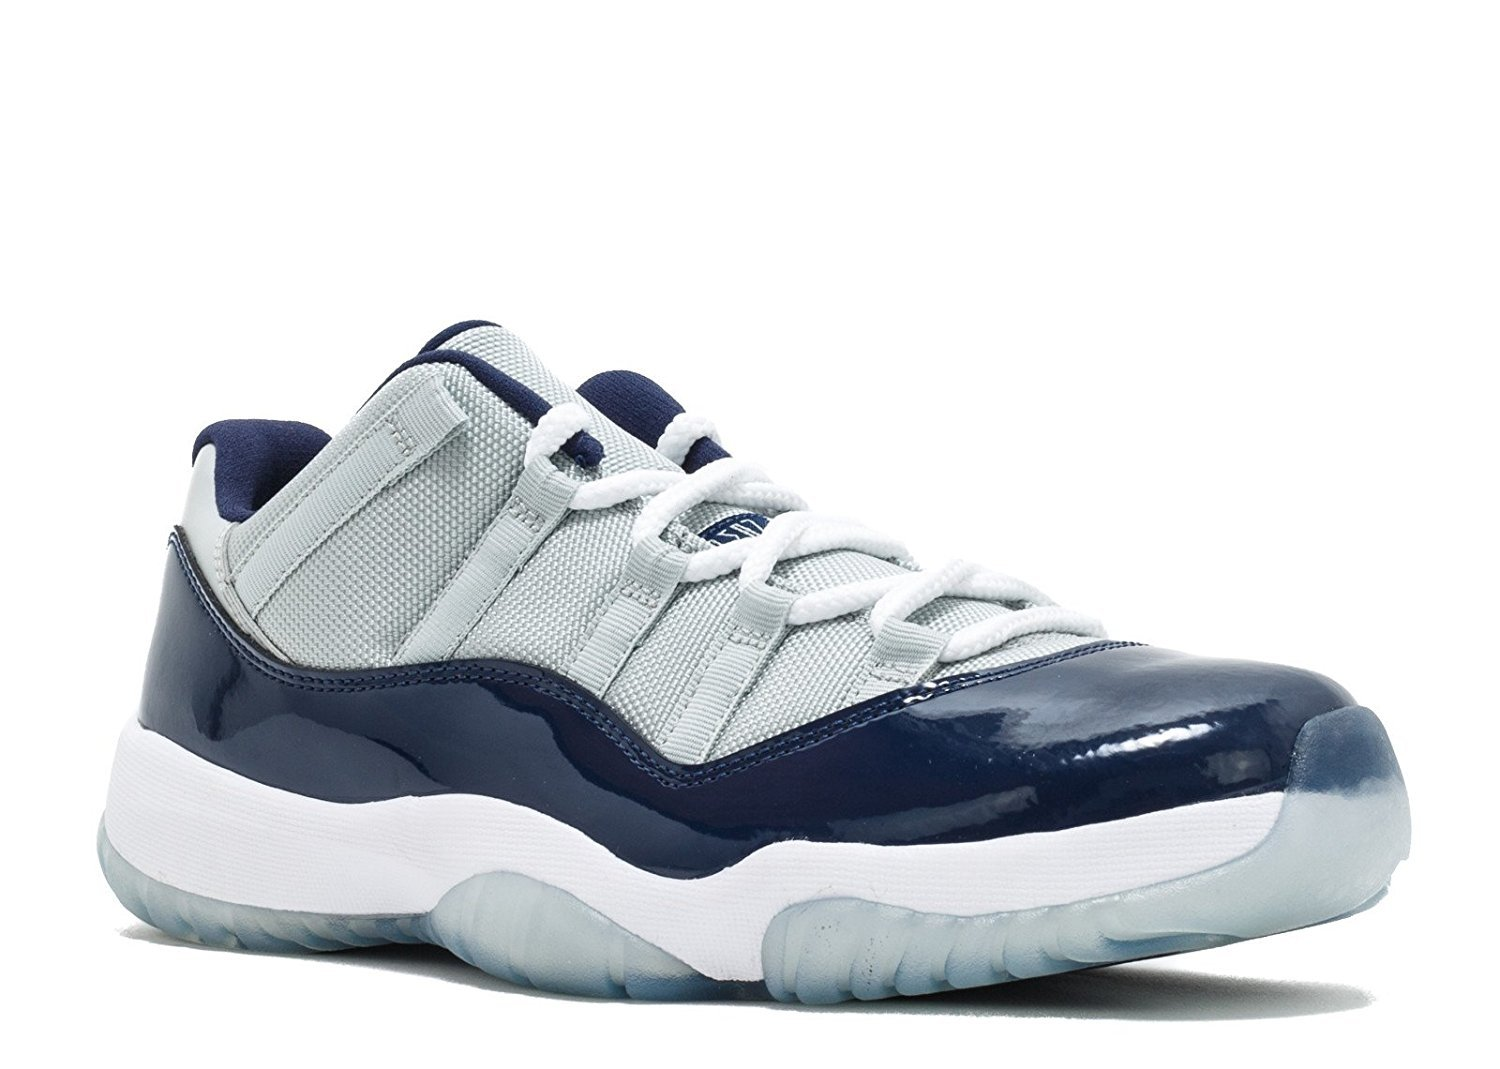 a34ac79c0a08 new style jordan nike mens air jordan 11 retro low georgetown grey mist  white midnight navy